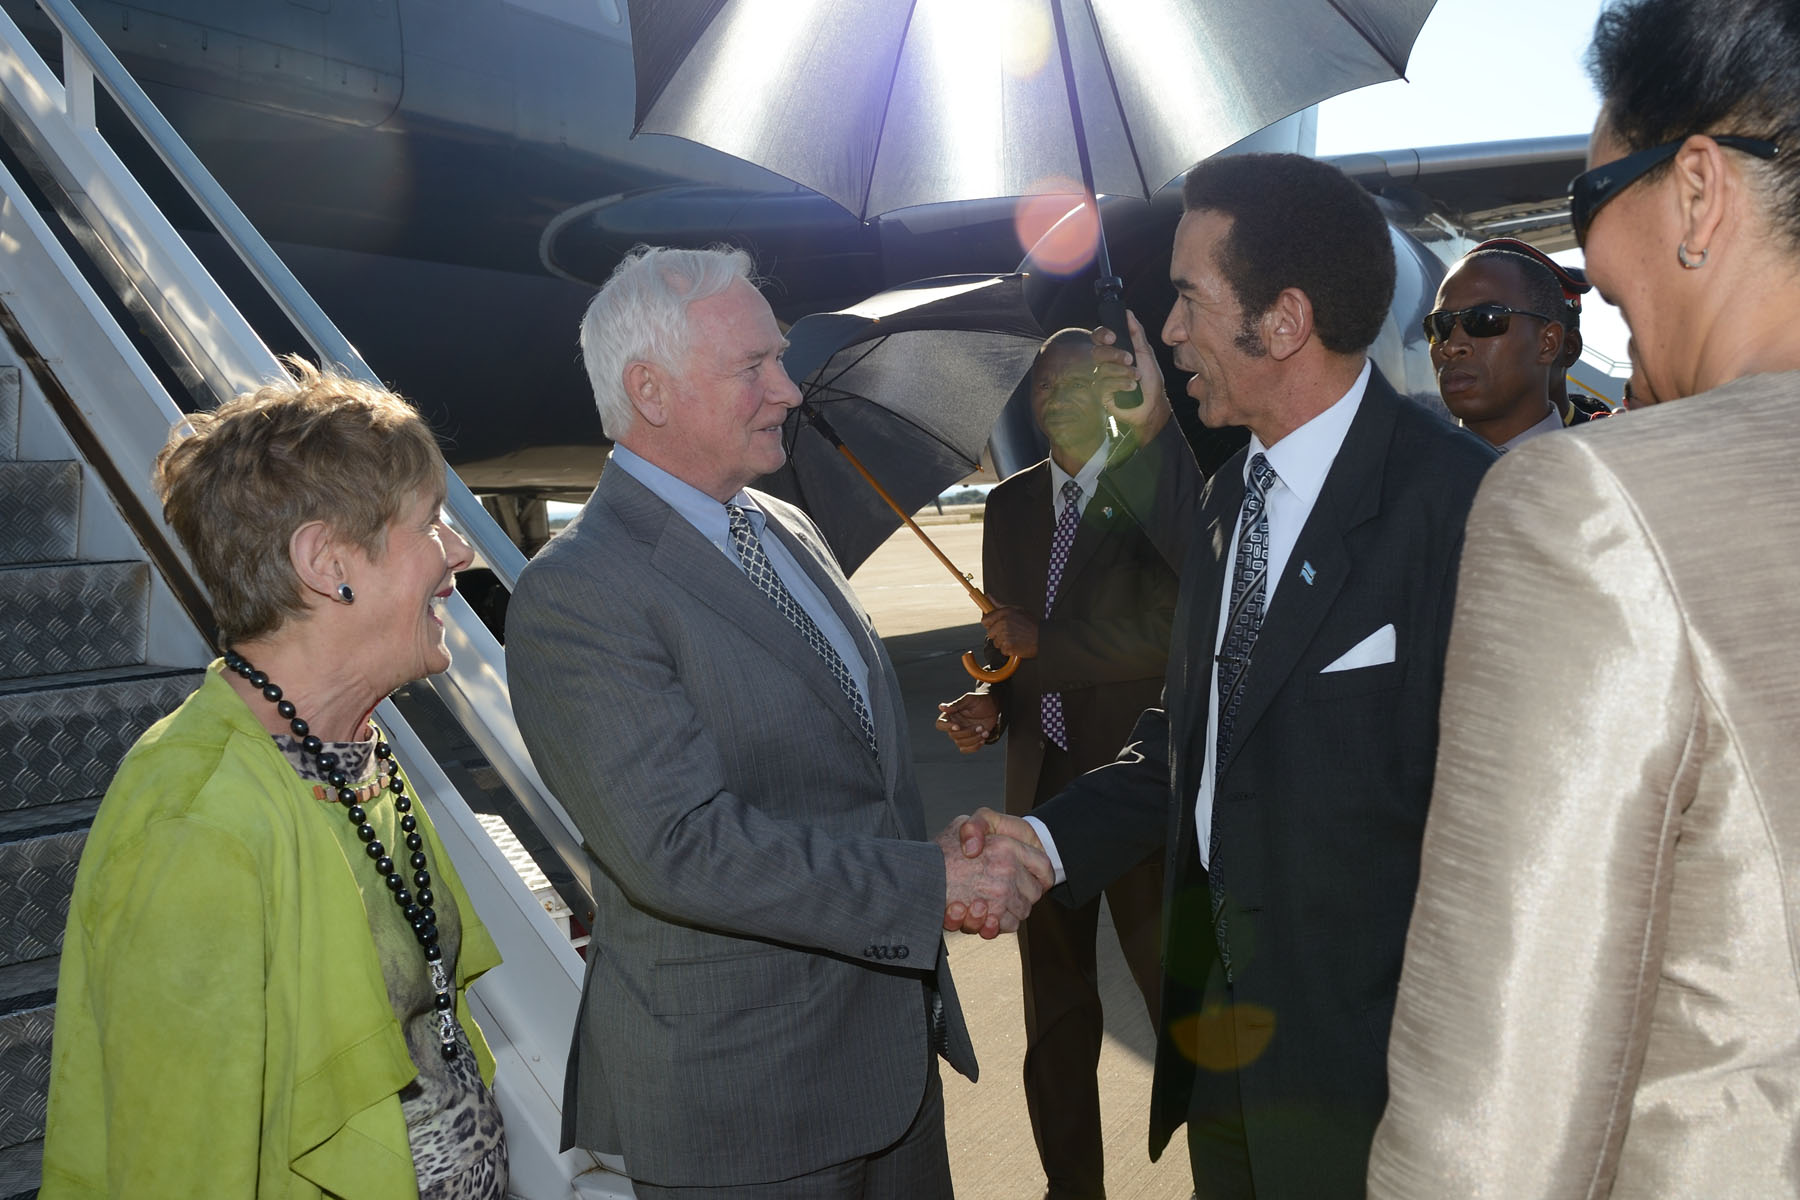 Upon their arrival in the capital city of Gaborone, Their Excellencies were officially welcomed by His Excellency Lieutenant General Seretse Khama Ian Khama, President of the Republic of Botswana, and Ms. Lisa Stadelbauer, High Commissioner of Canada to the Republic of Botswana.